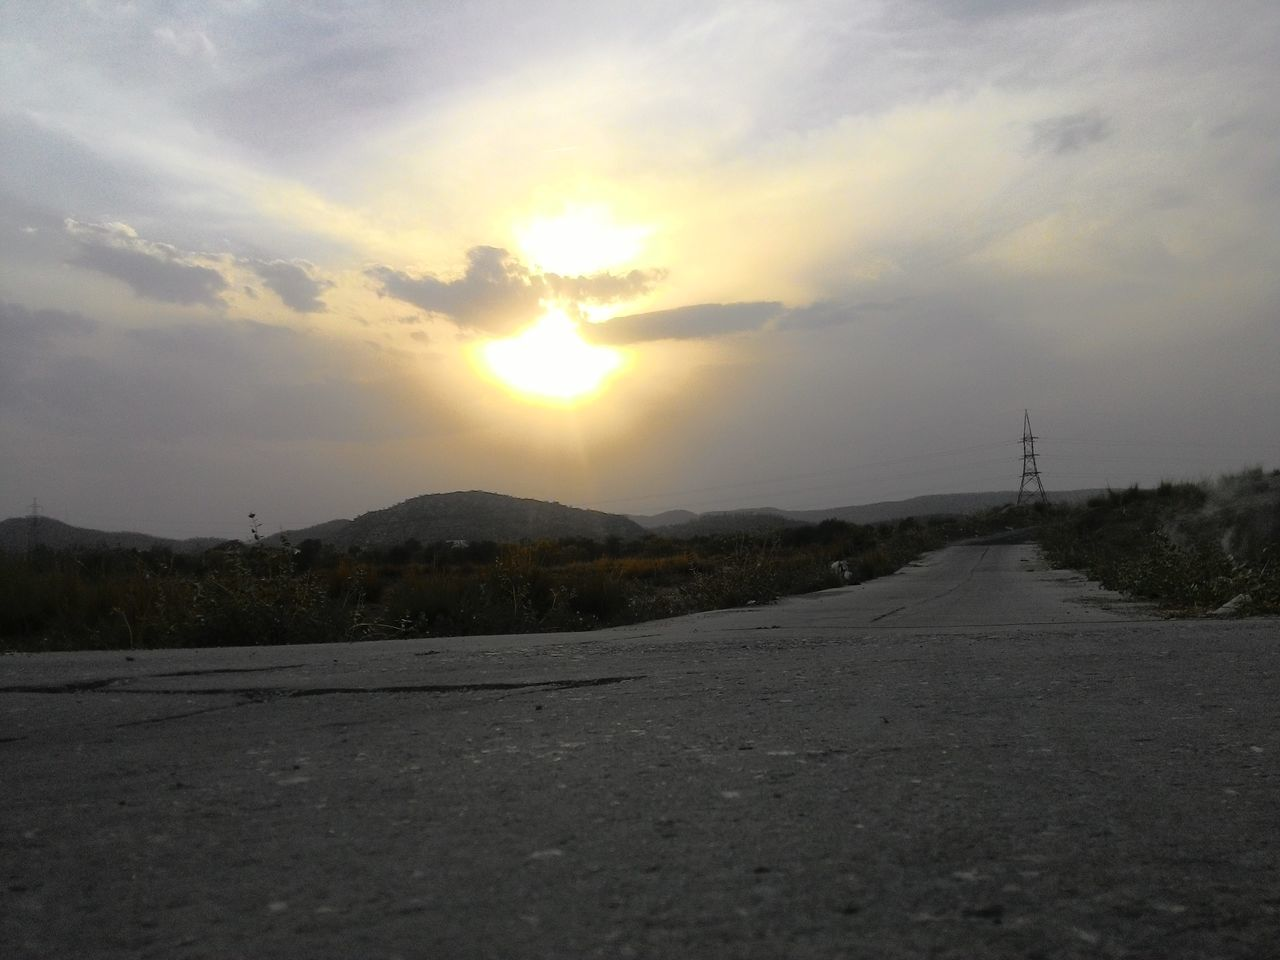 road, sunset, sky, no people, outdoors, nature, transportation, scenics, sun, landscape, mountain, beauty in nature, day